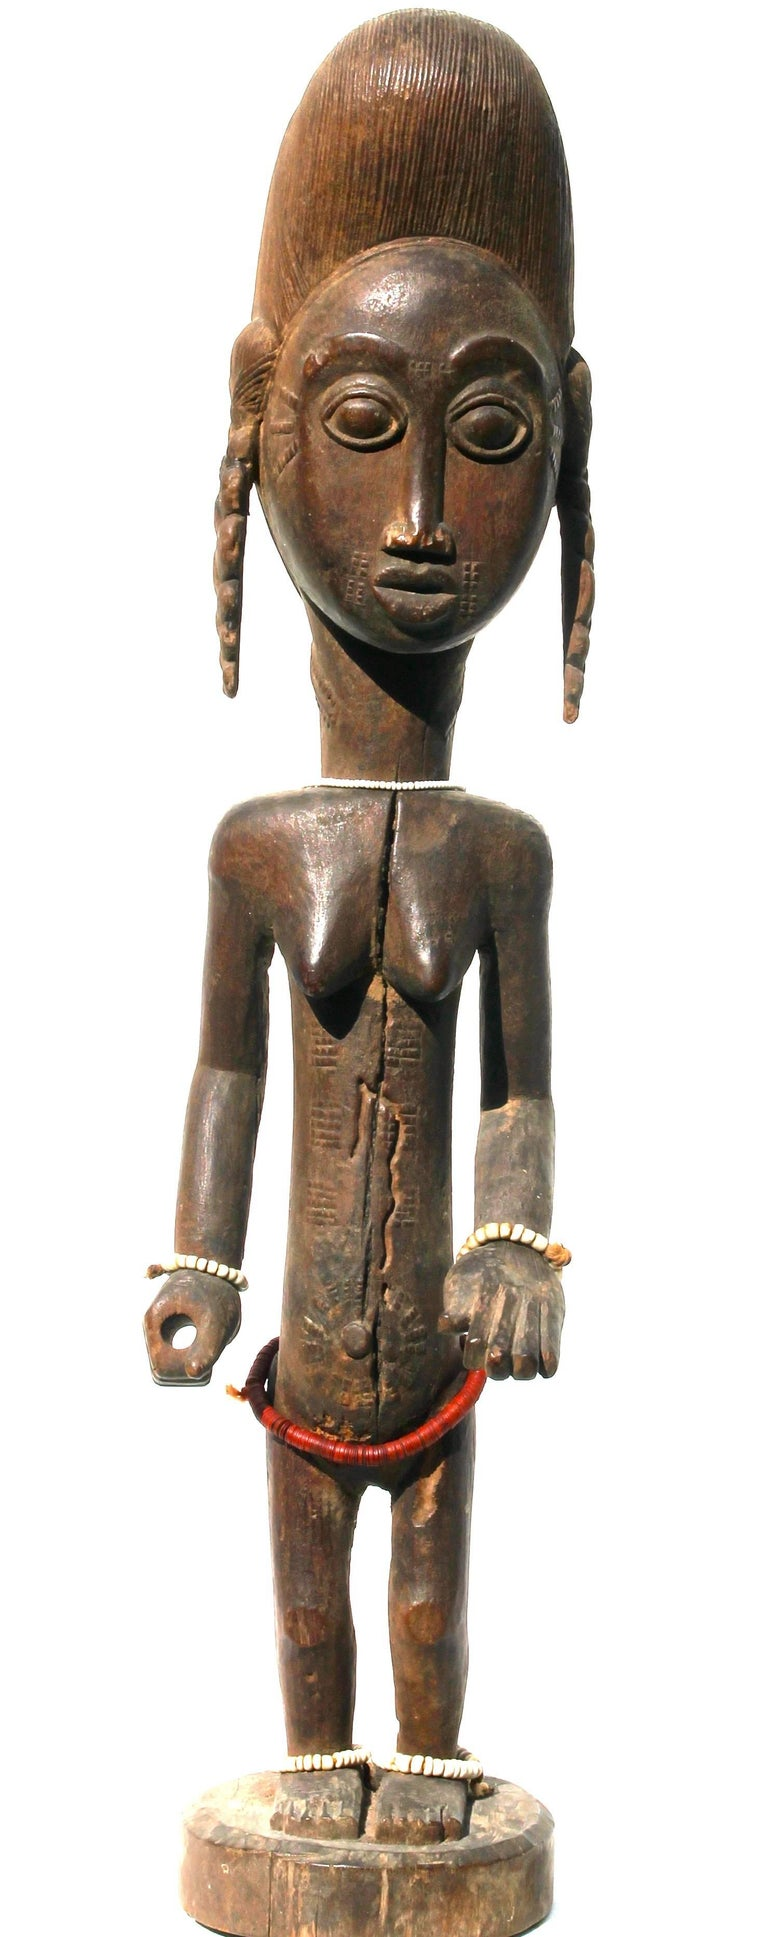 A fine Baule female figure. Provenance: The Alexander S. Honig collection of African Art, May 18, 1993, Lot: 78, Sotheby's New York.